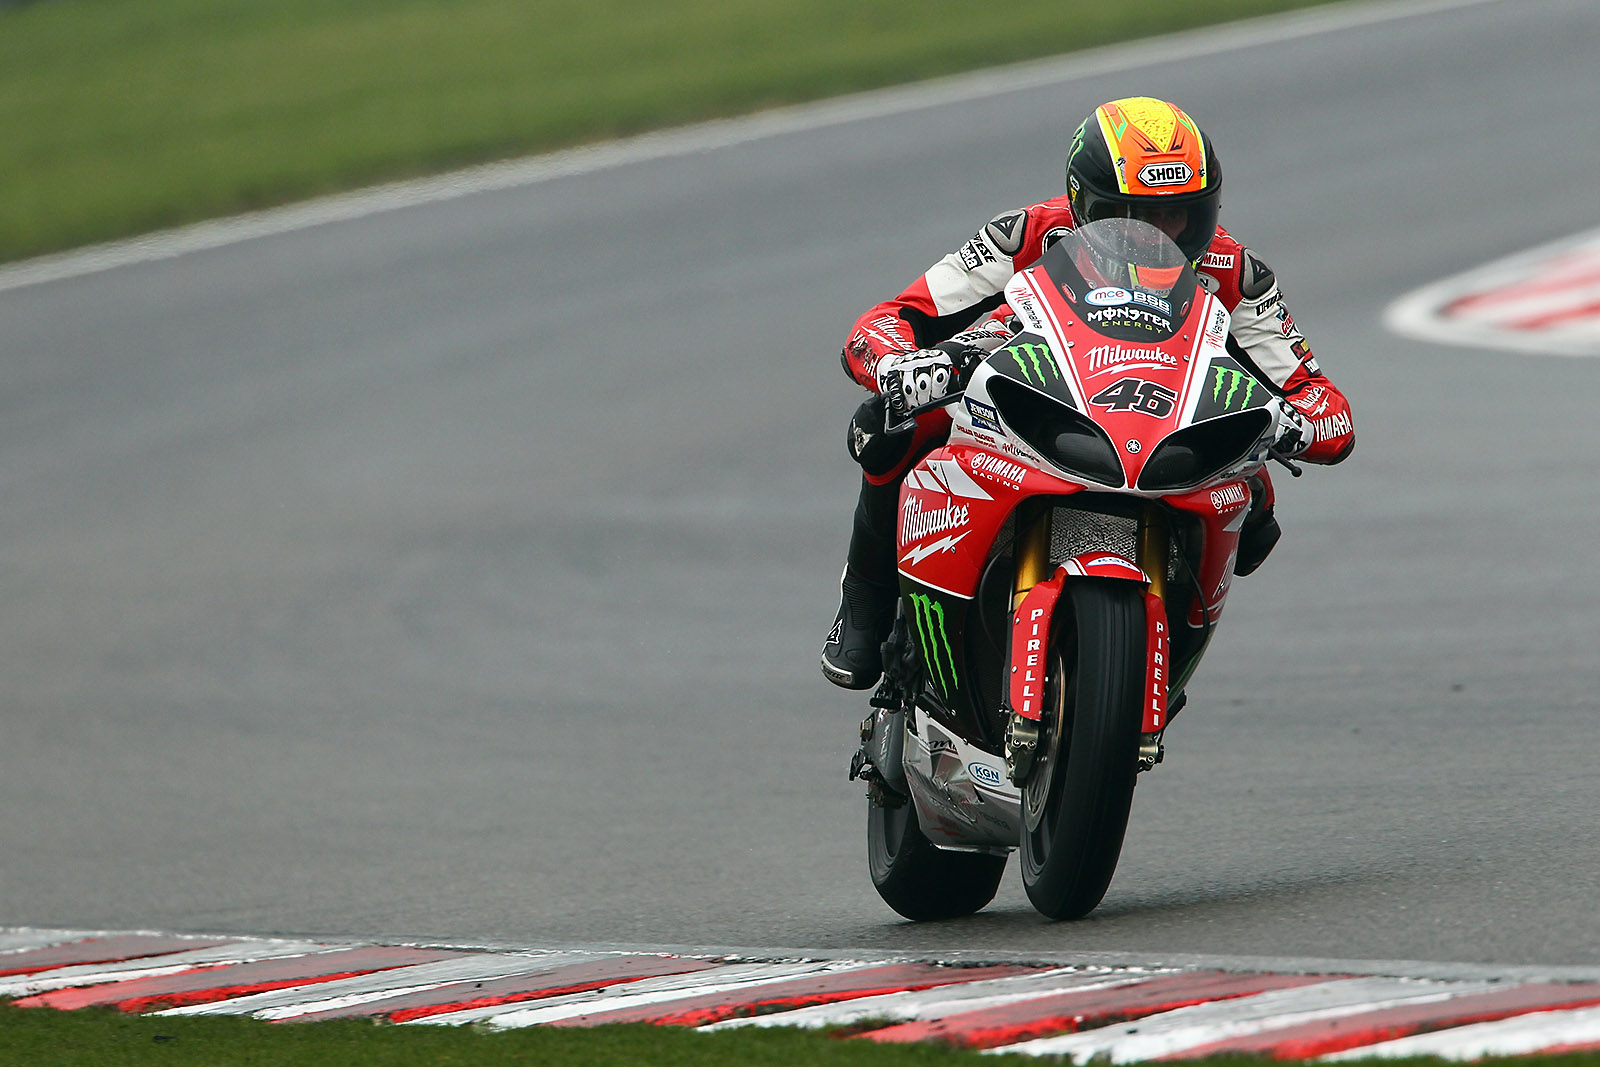 Tommy Bridewell in action at Brands Hatch